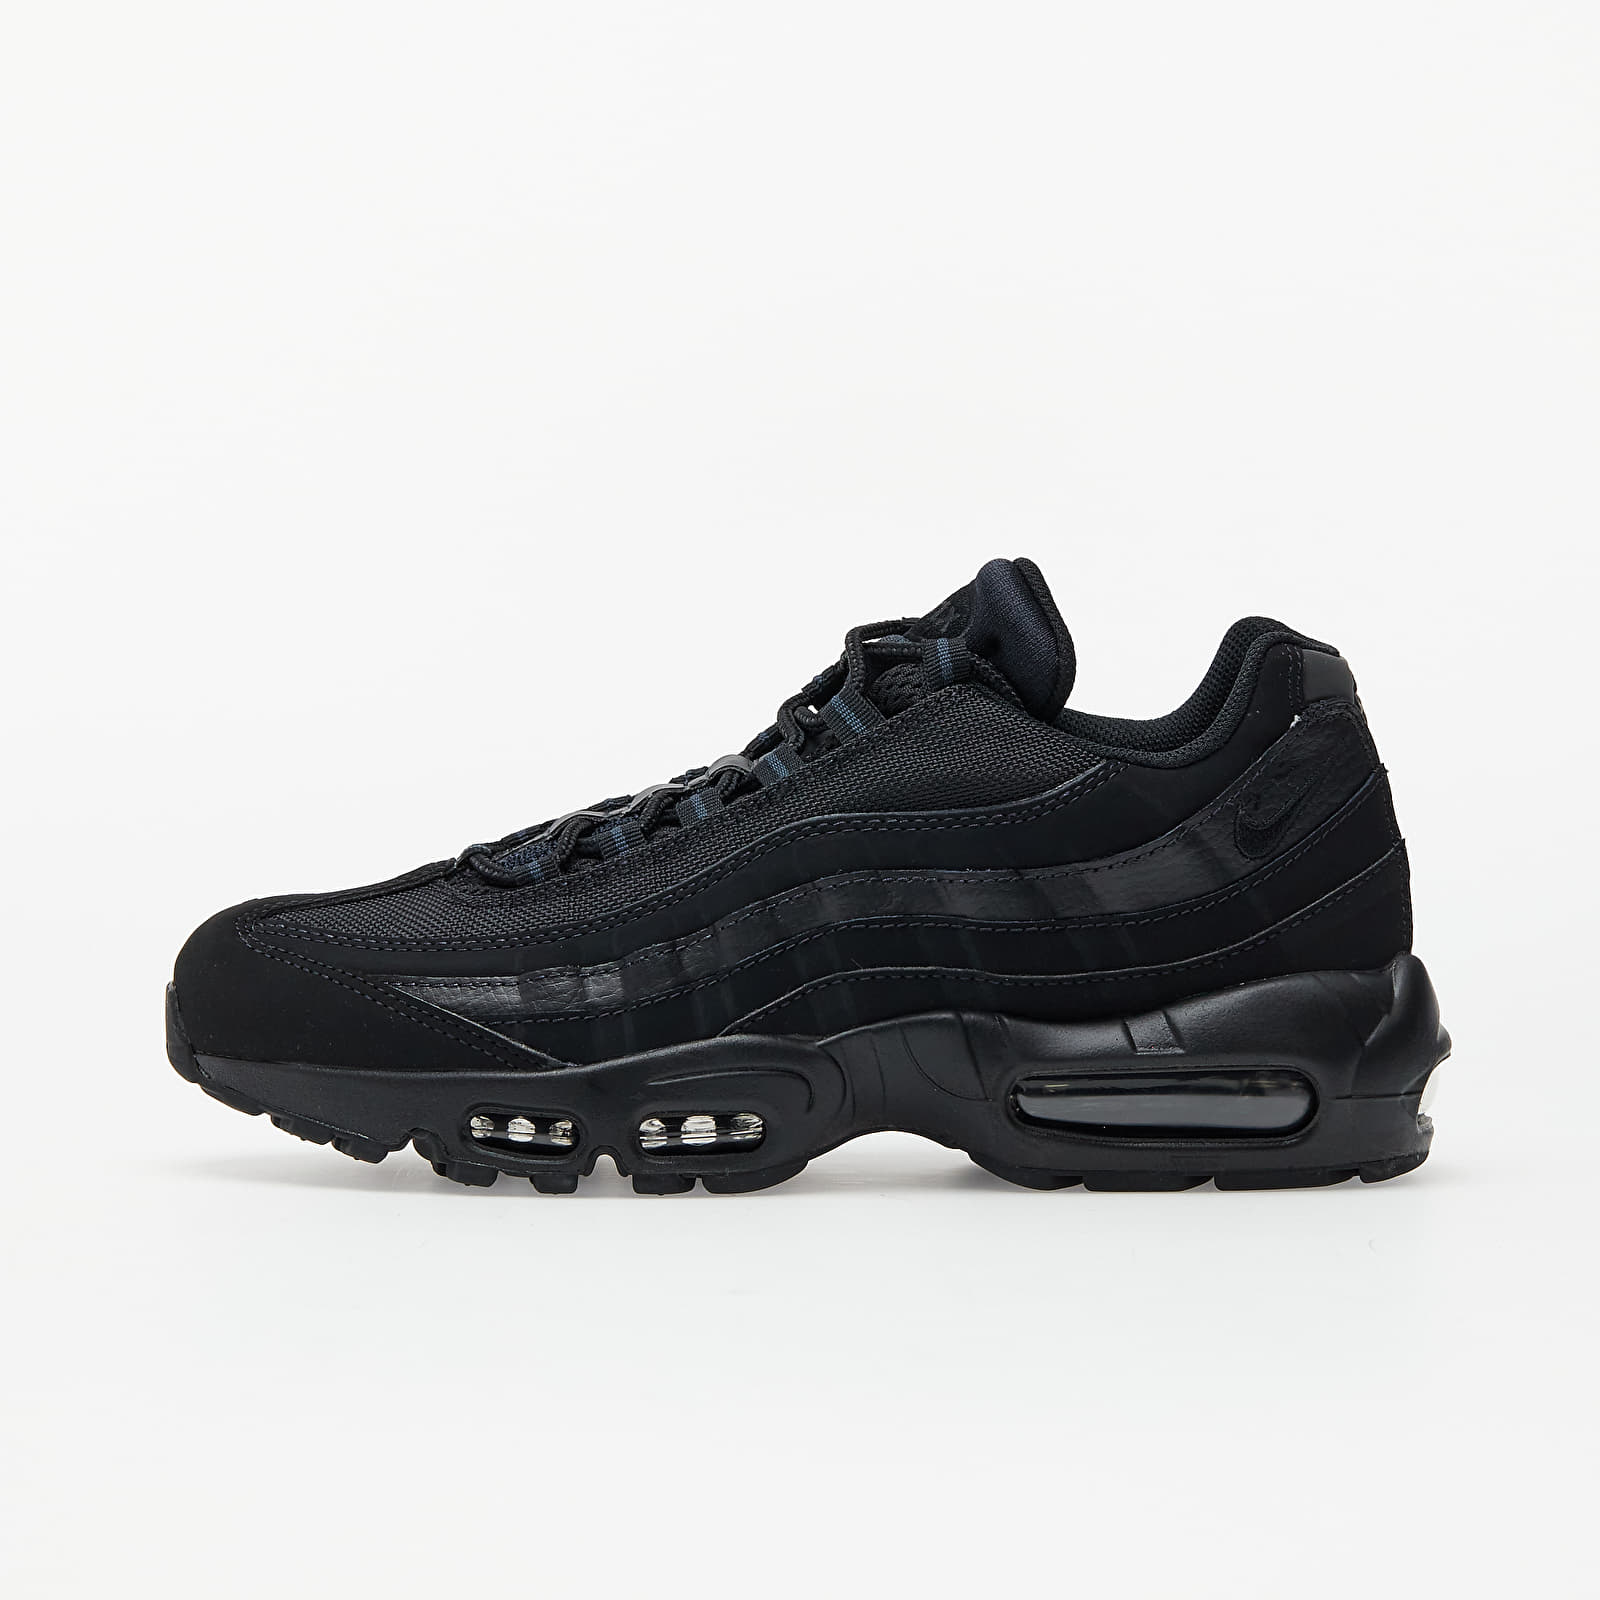 Nike Air Max 95 Black/ Black-Anthracite EUR 40.5